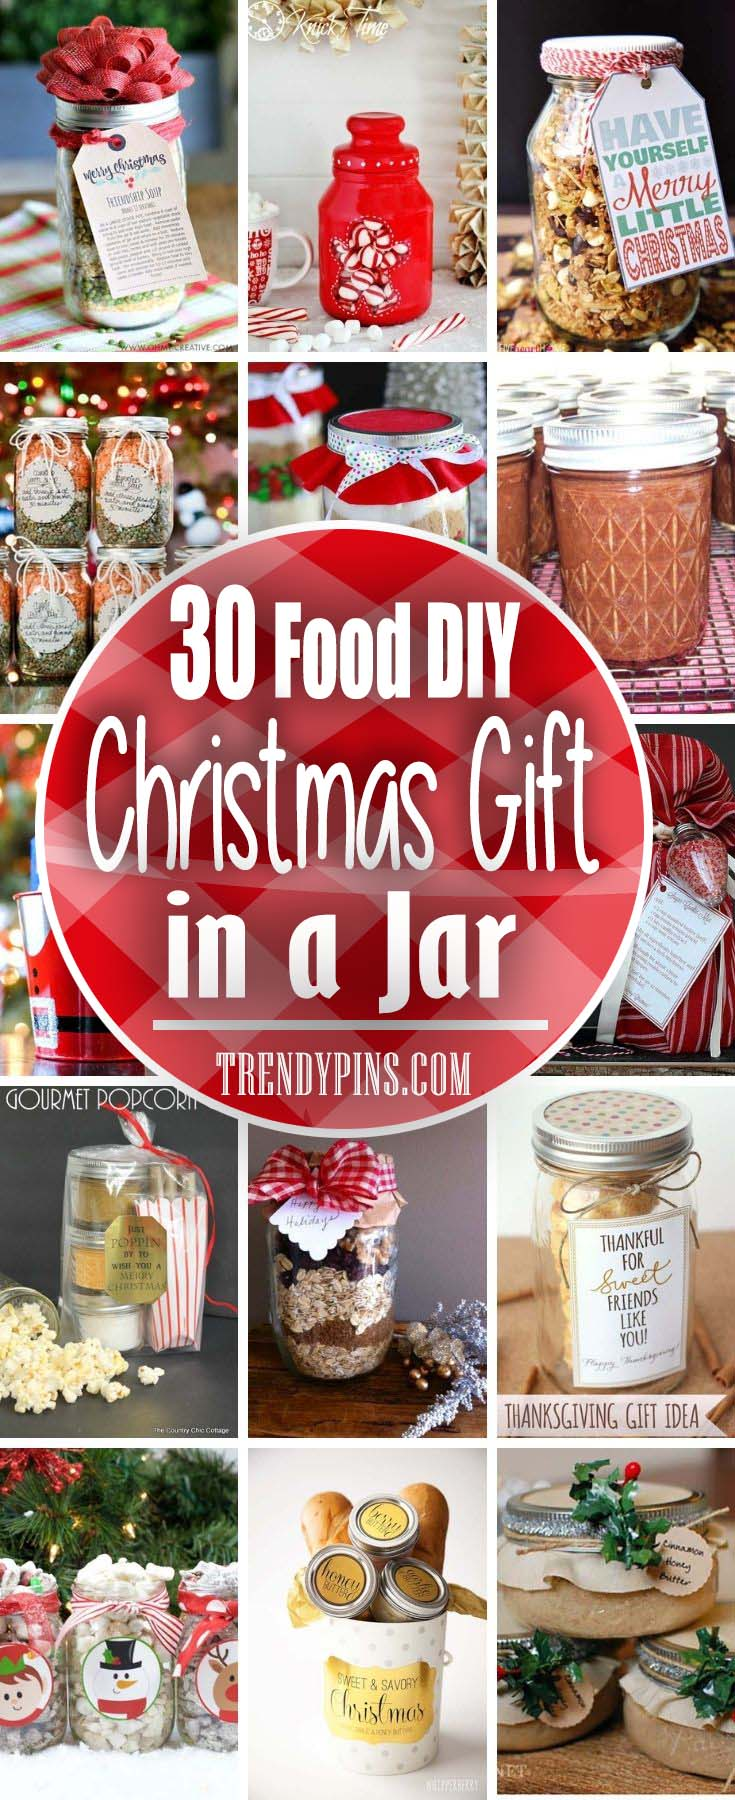 30 Food Diy Christmas Gifts In a Jar #Christmas #food #gifts #trendypins